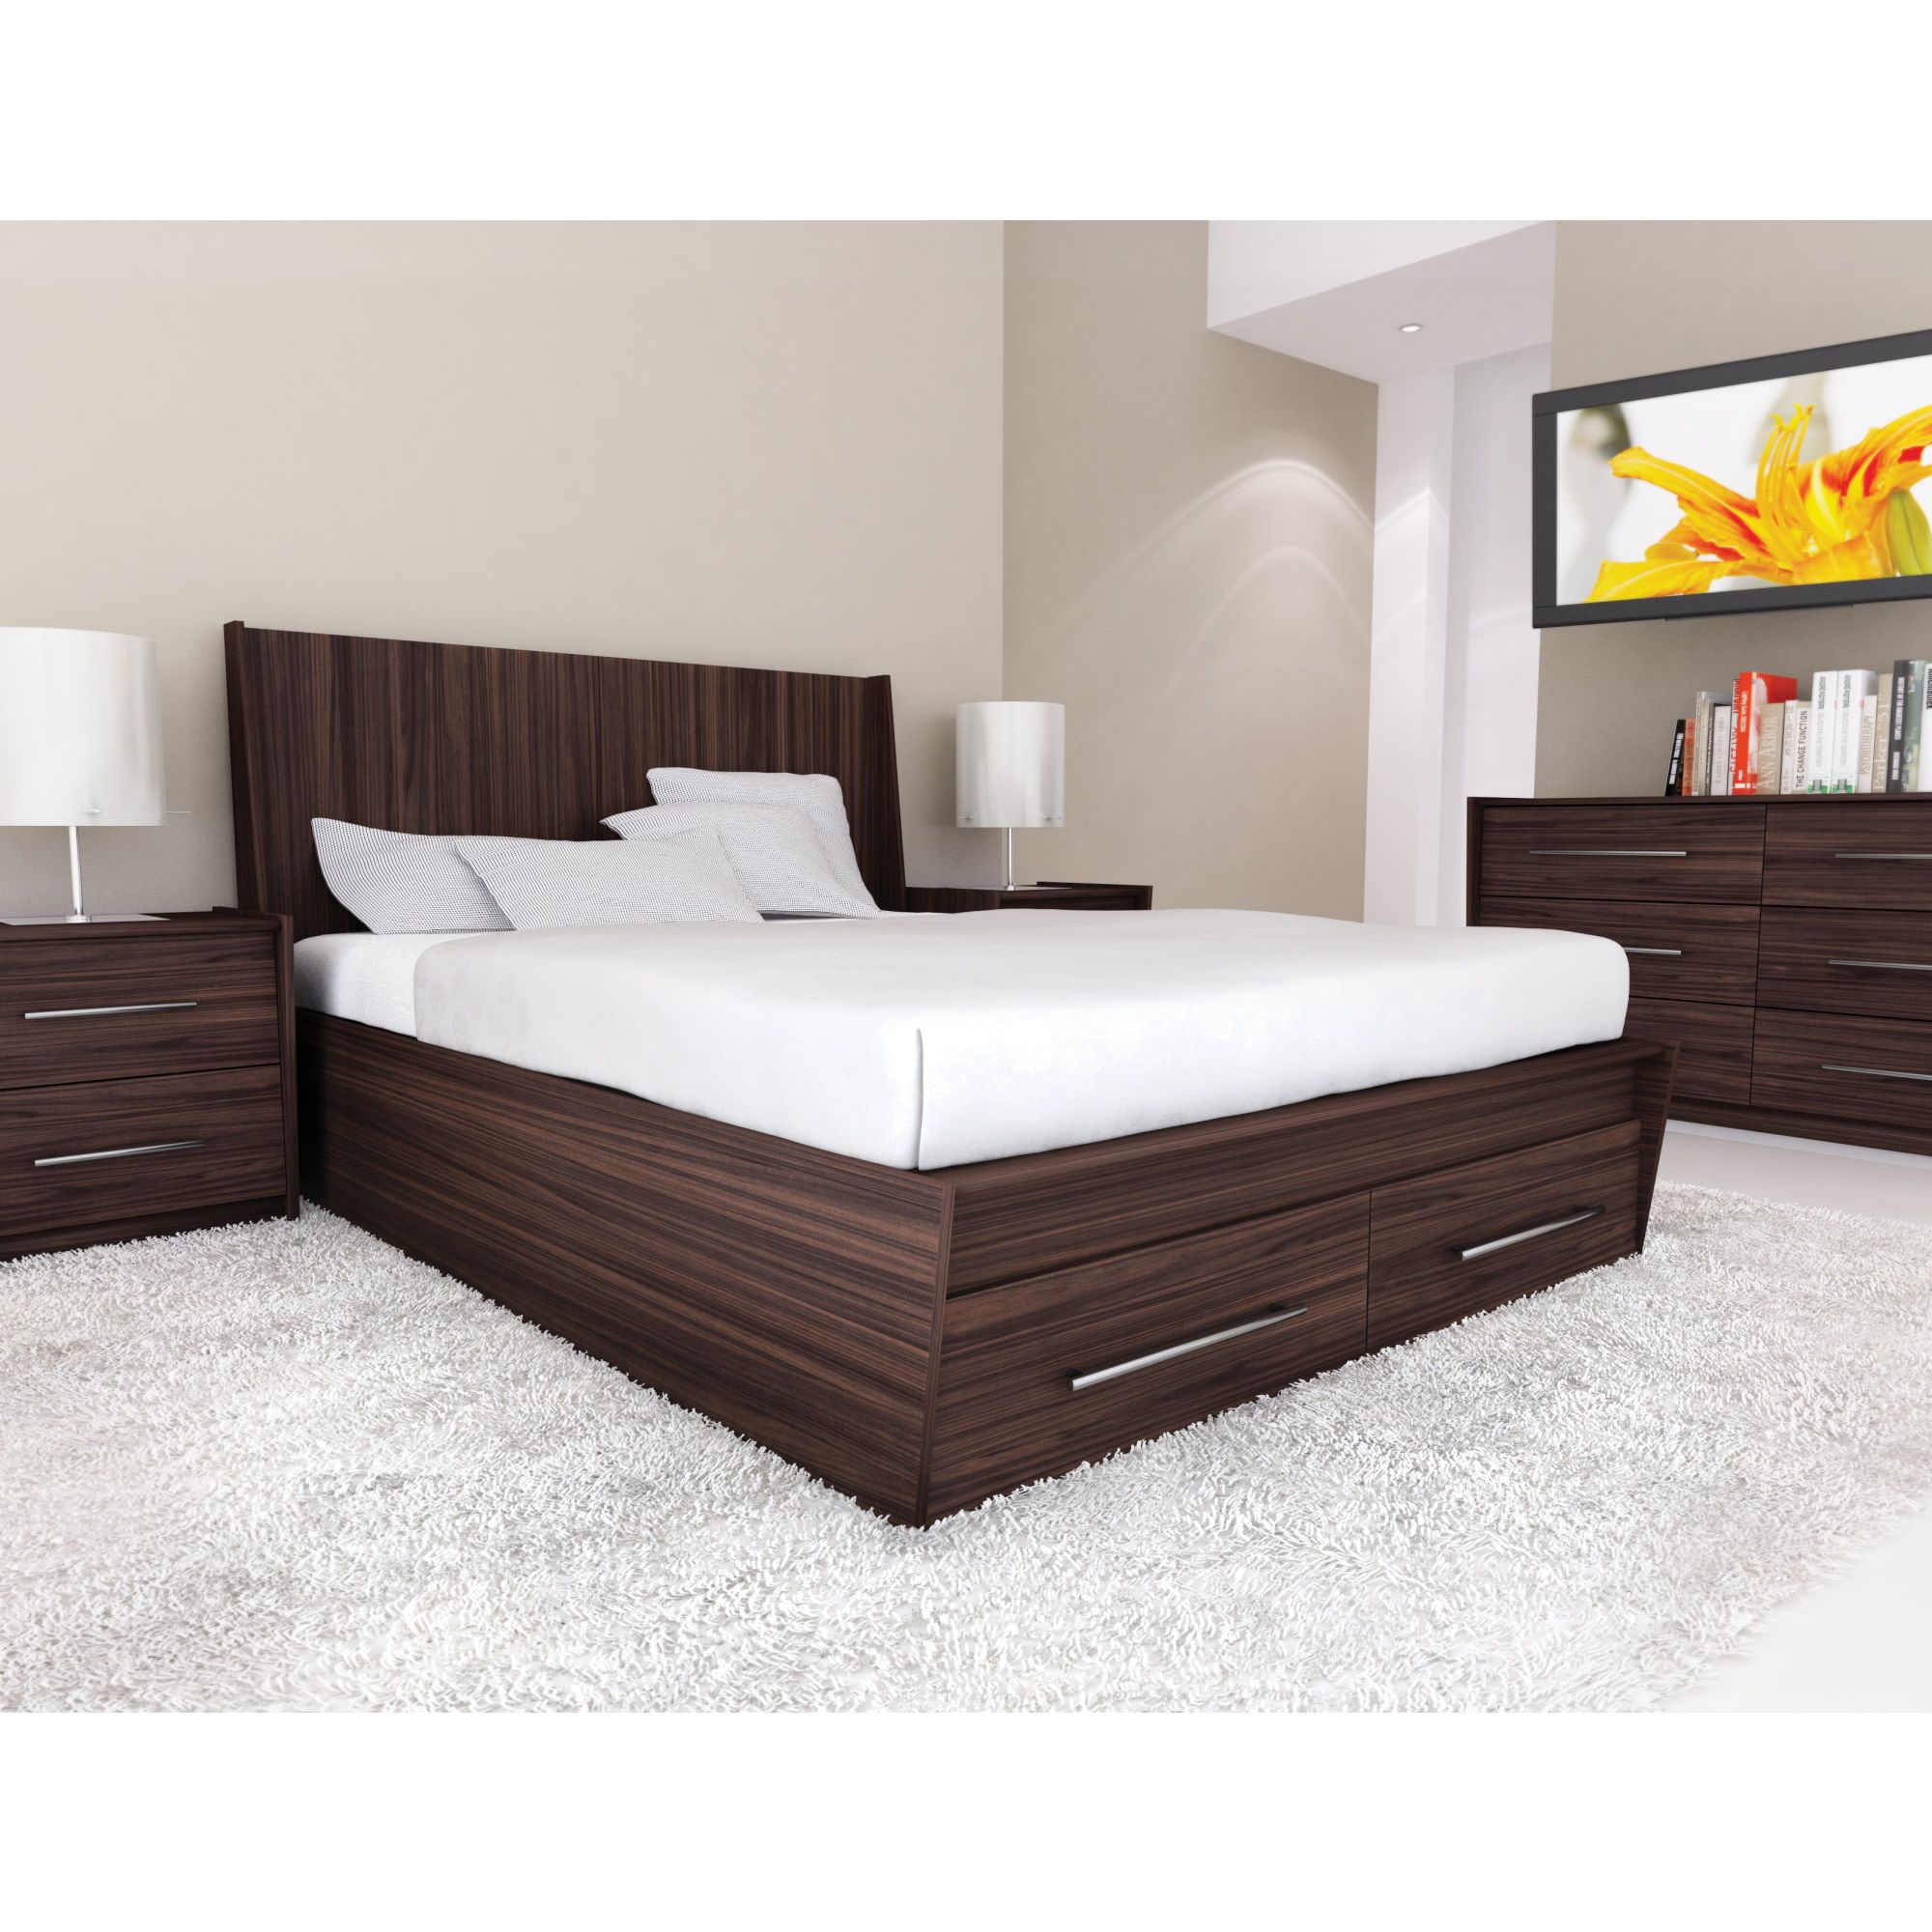 Bed designs for your comfortable bedroom interior design for Popular bed designs